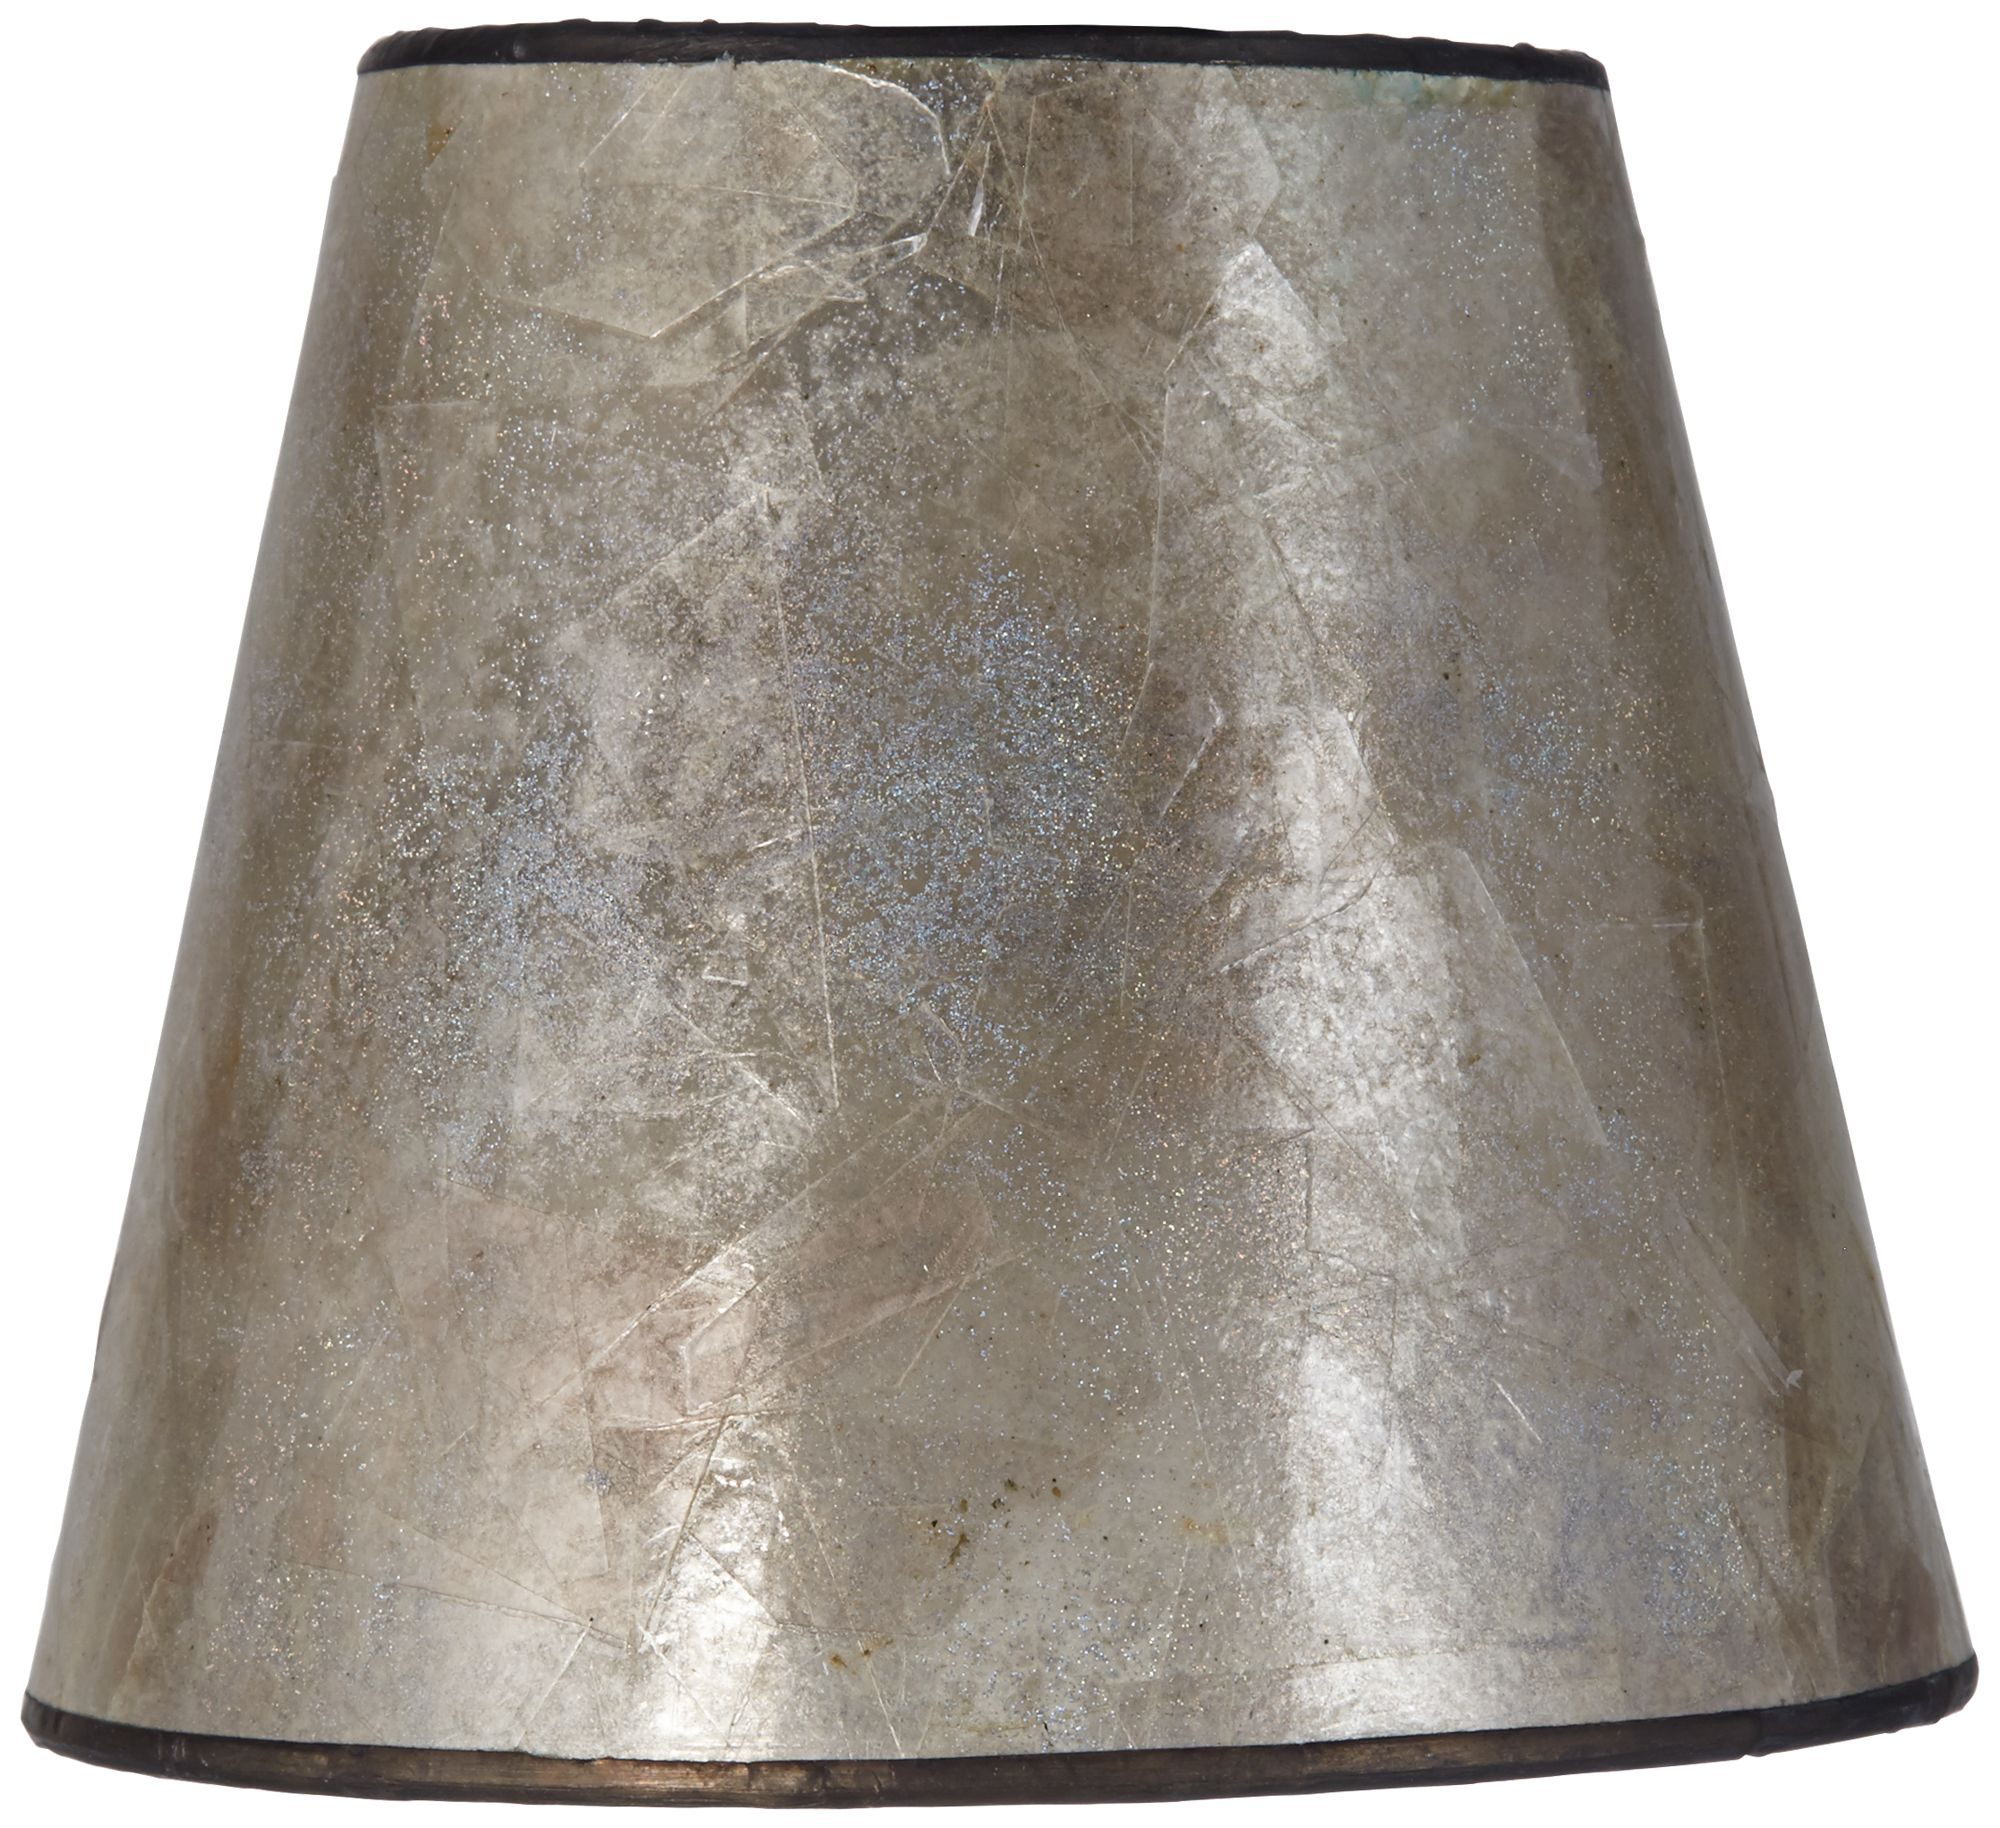 Blonde Mica Lamp Shade 3.5x5.5x5 (Clip On)